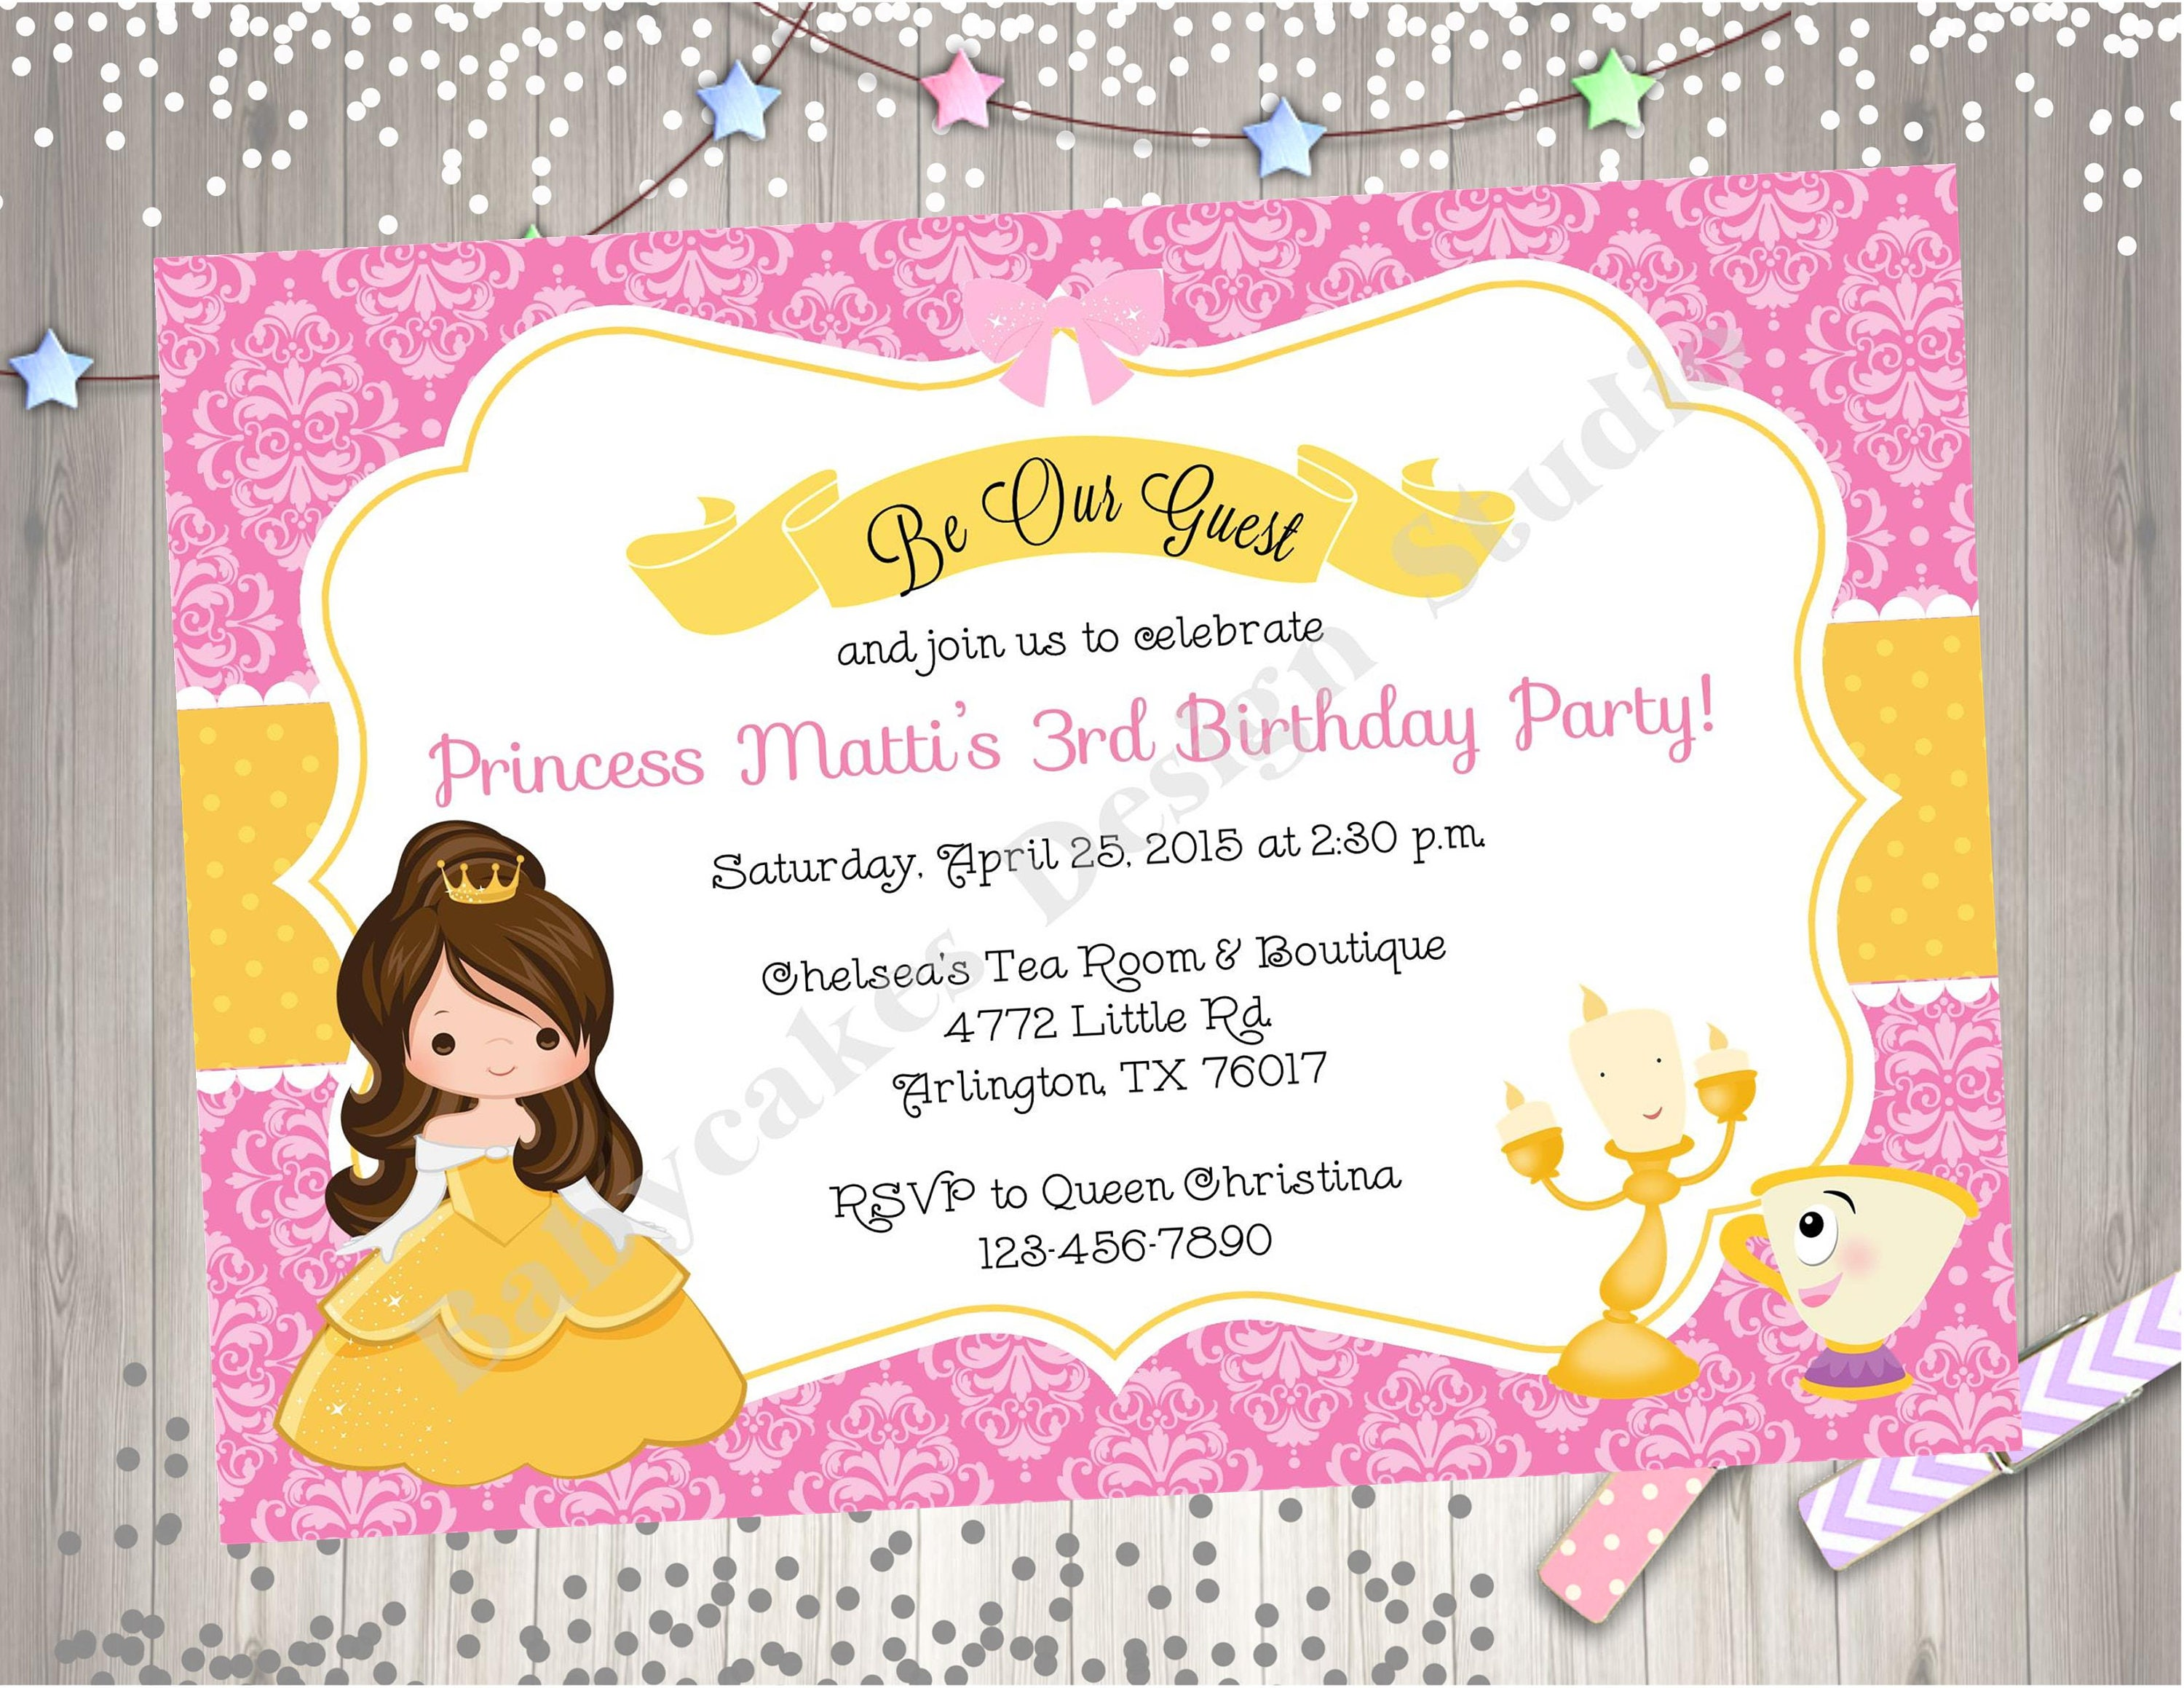 Belle invitation belle birthday princess belle birthday etsy zoom filmwisefo